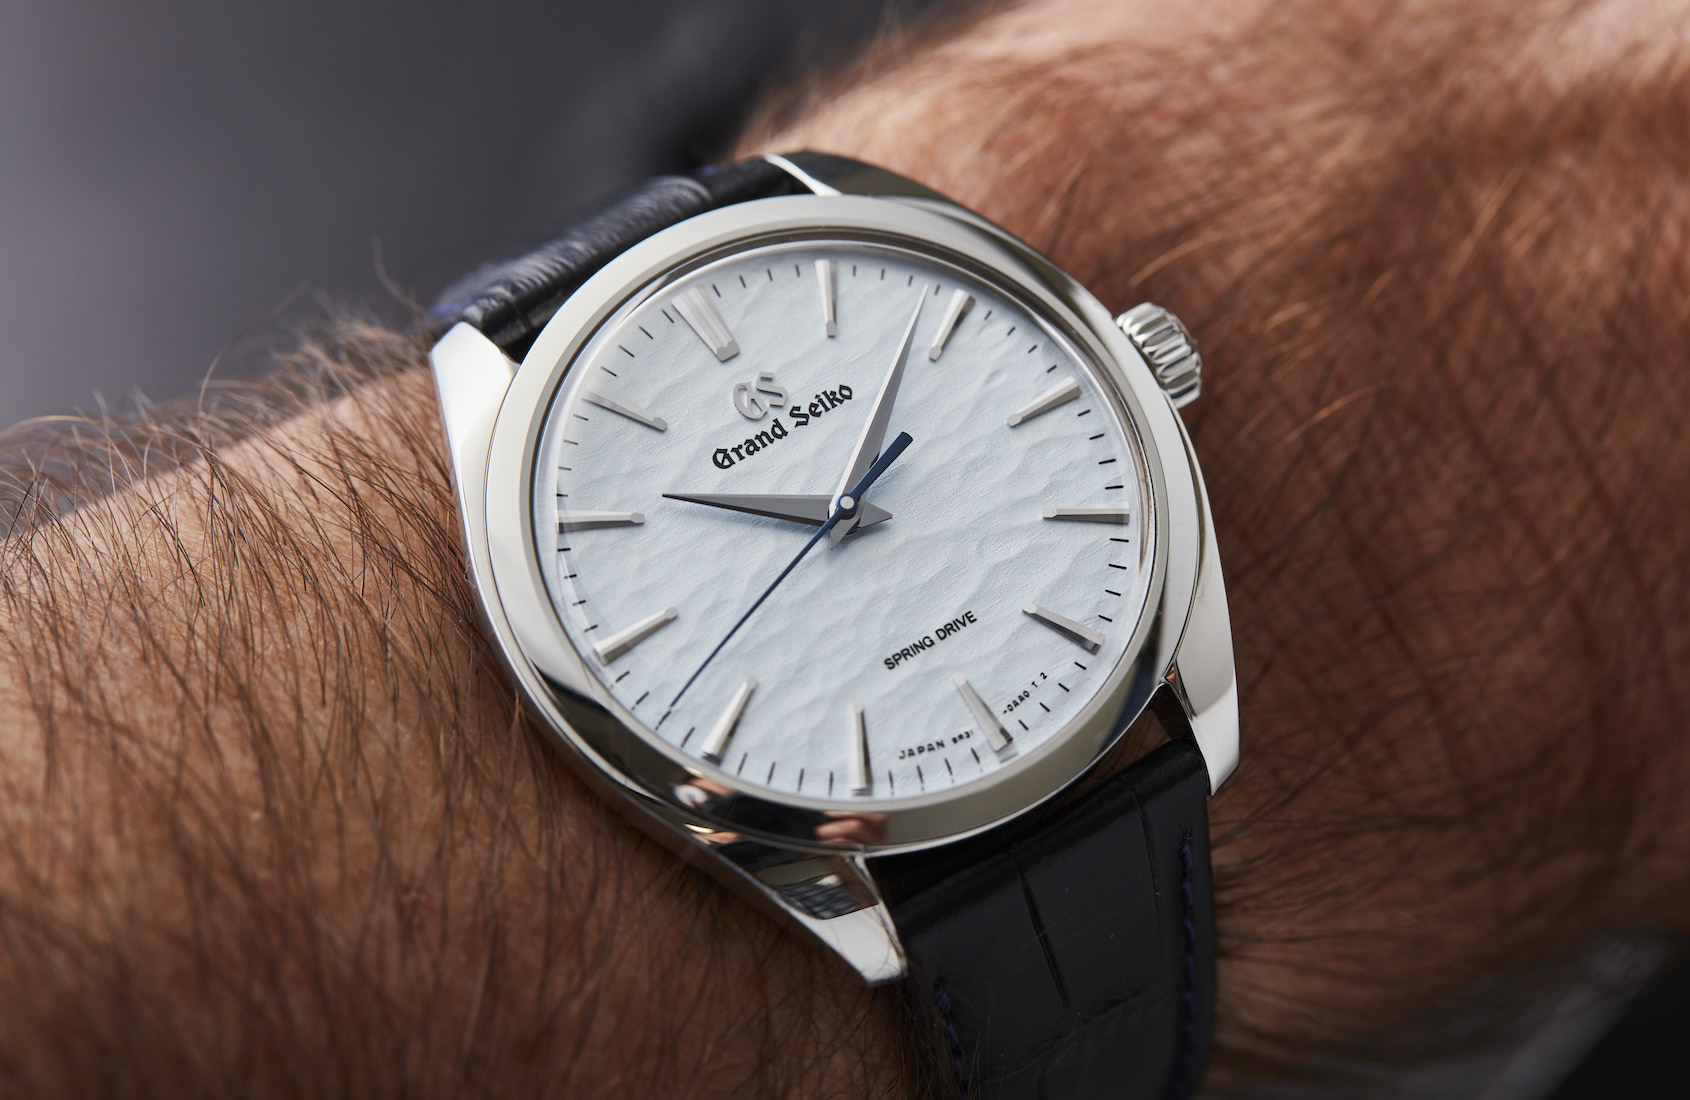 VIDEO: The mesmerising dial of the icy blue Grand Seiko SBGY007